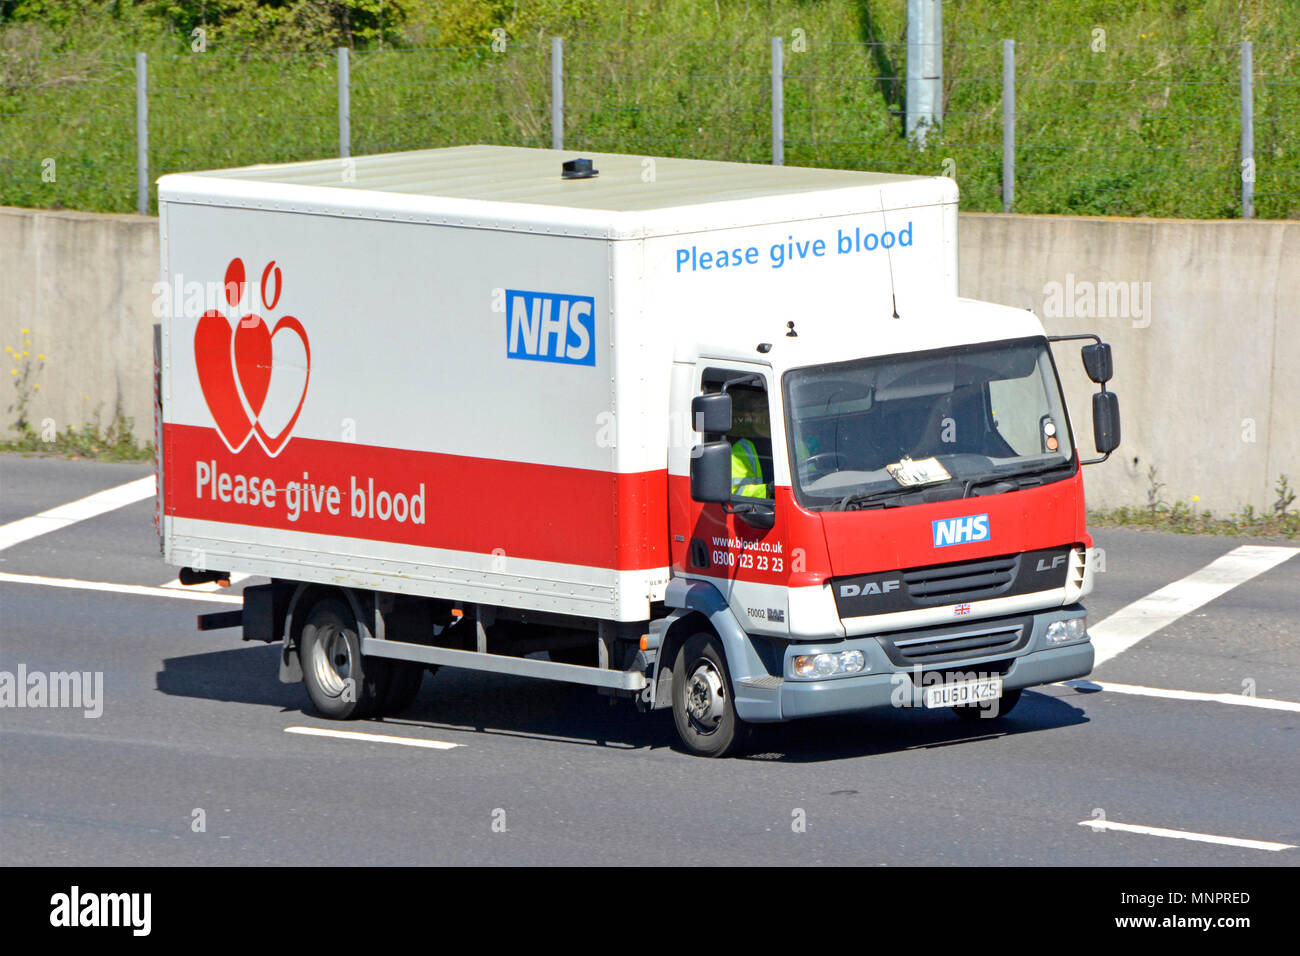 Daf lorry truck & driver M25 motorway side advertising donate give blood National Health Service in England NHS Blood and Transplant service or NHSBT - Stock Image